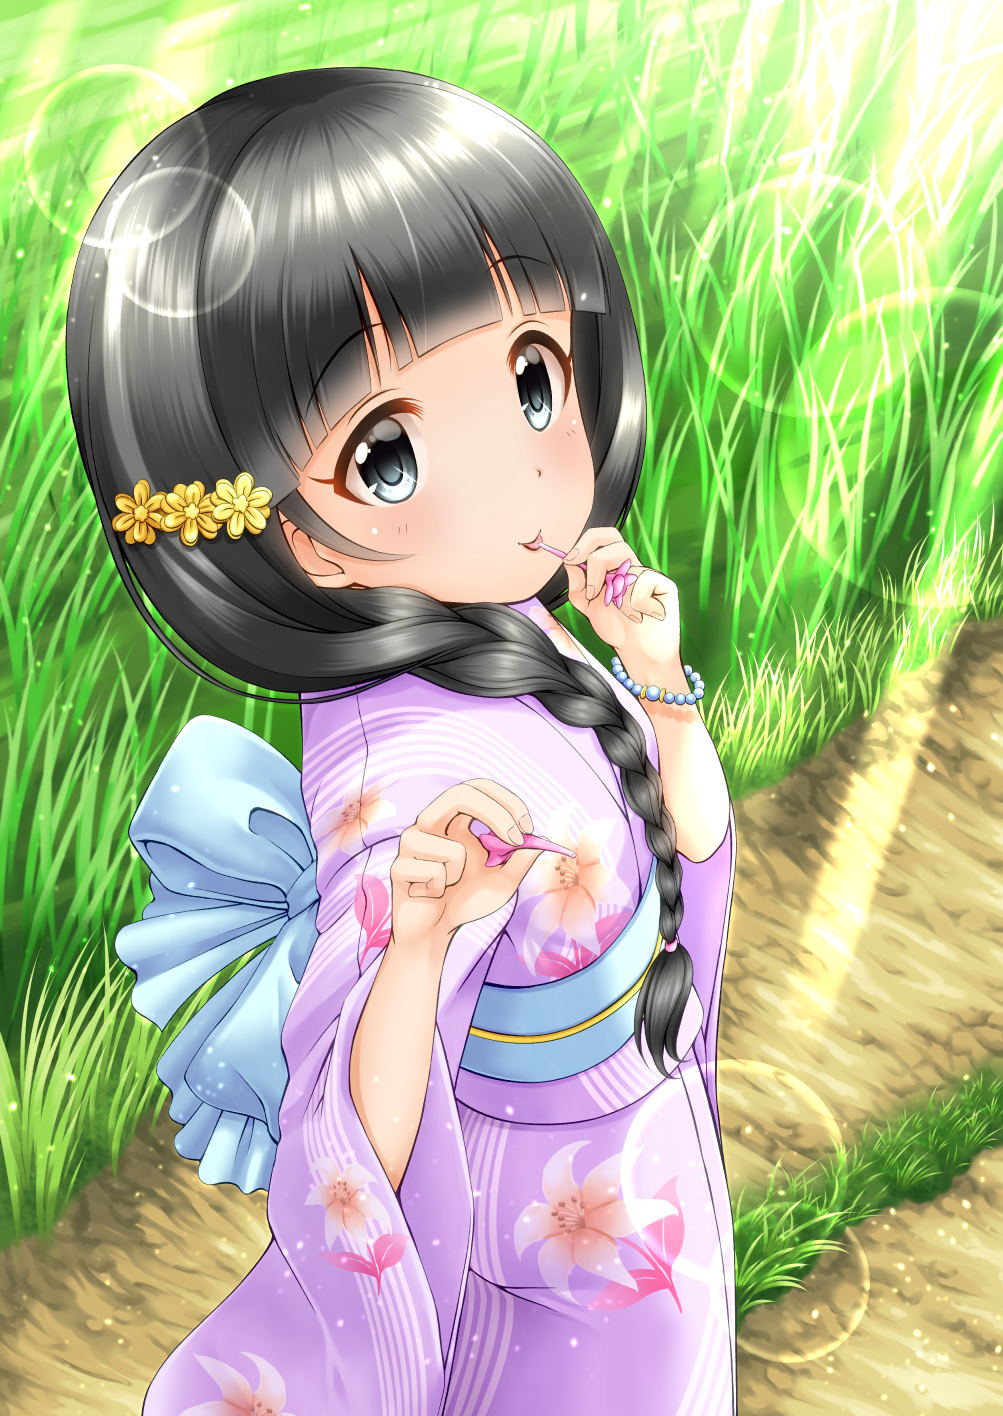 1girl back_bow black_hair blue_bow blush bow braid closed_mouth commentary_request dress floral_print flower grass hair_flower hair_ornament hair_over_shoulder highres idolmaster idolmaster_cinderella_girls japanese_clothes kimono lens_flare long_hair long_sleeves looking_at_viewer obi outdoors print_kimono purple_kimono regular_mow road sash side_braid single_braid smile solo standing sunlight tongue tongue_out ujiie_mutsumi very_long_hair wide_sleeves yellow_flower